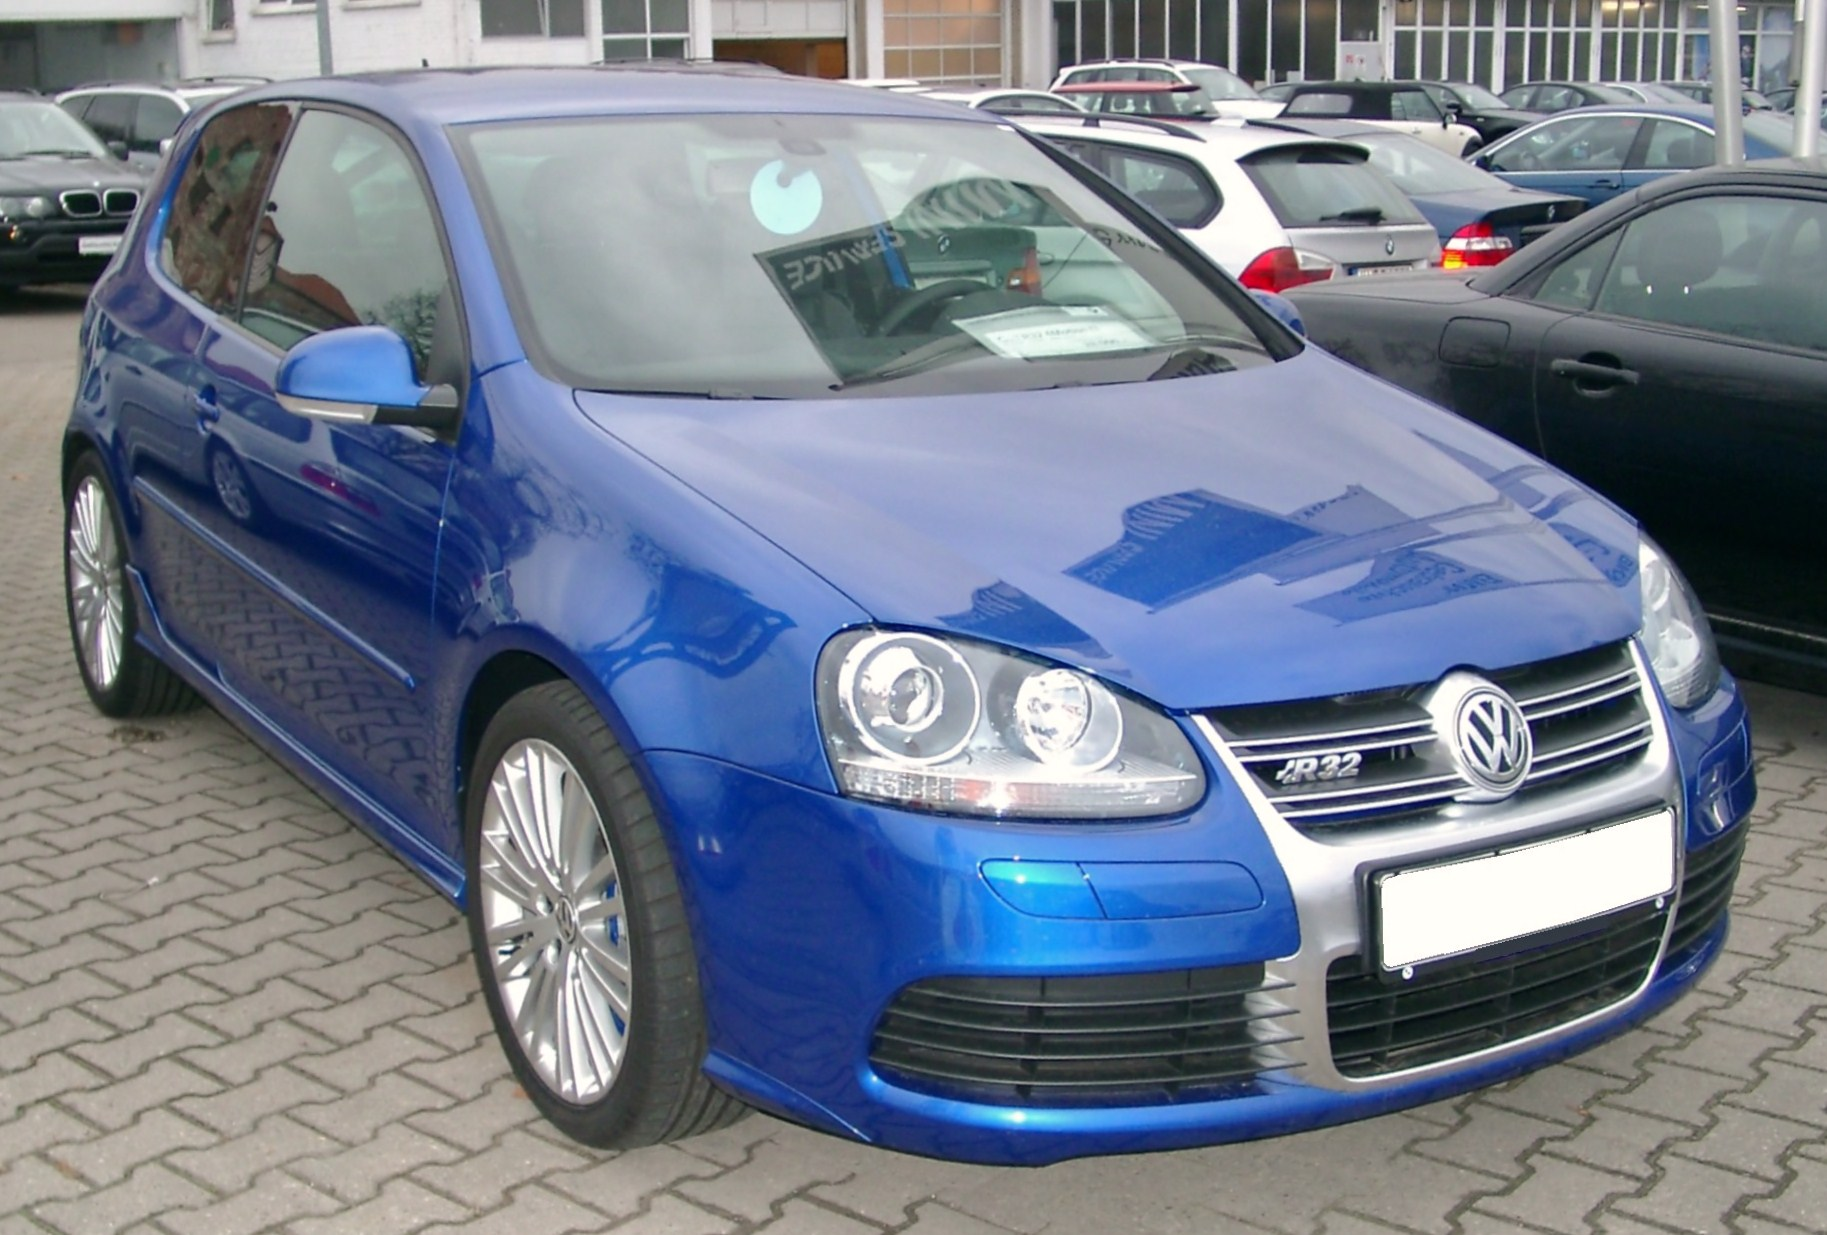 file vw golf v r32 front wikimedia commons. Black Bedroom Furniture Sets. Home Design Ideas